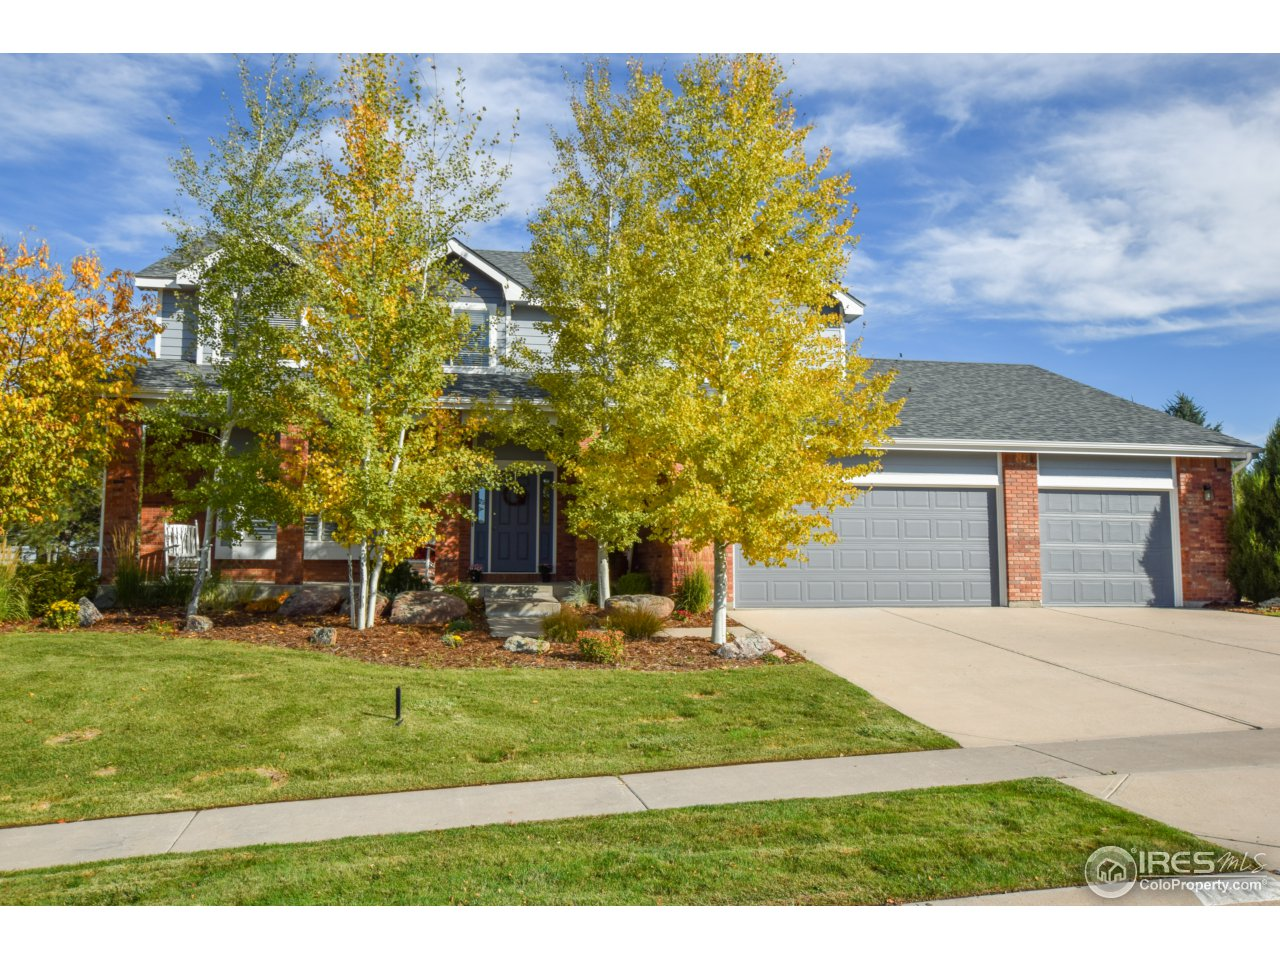 1445 Ridge West Dr, Windsor, CO 80550